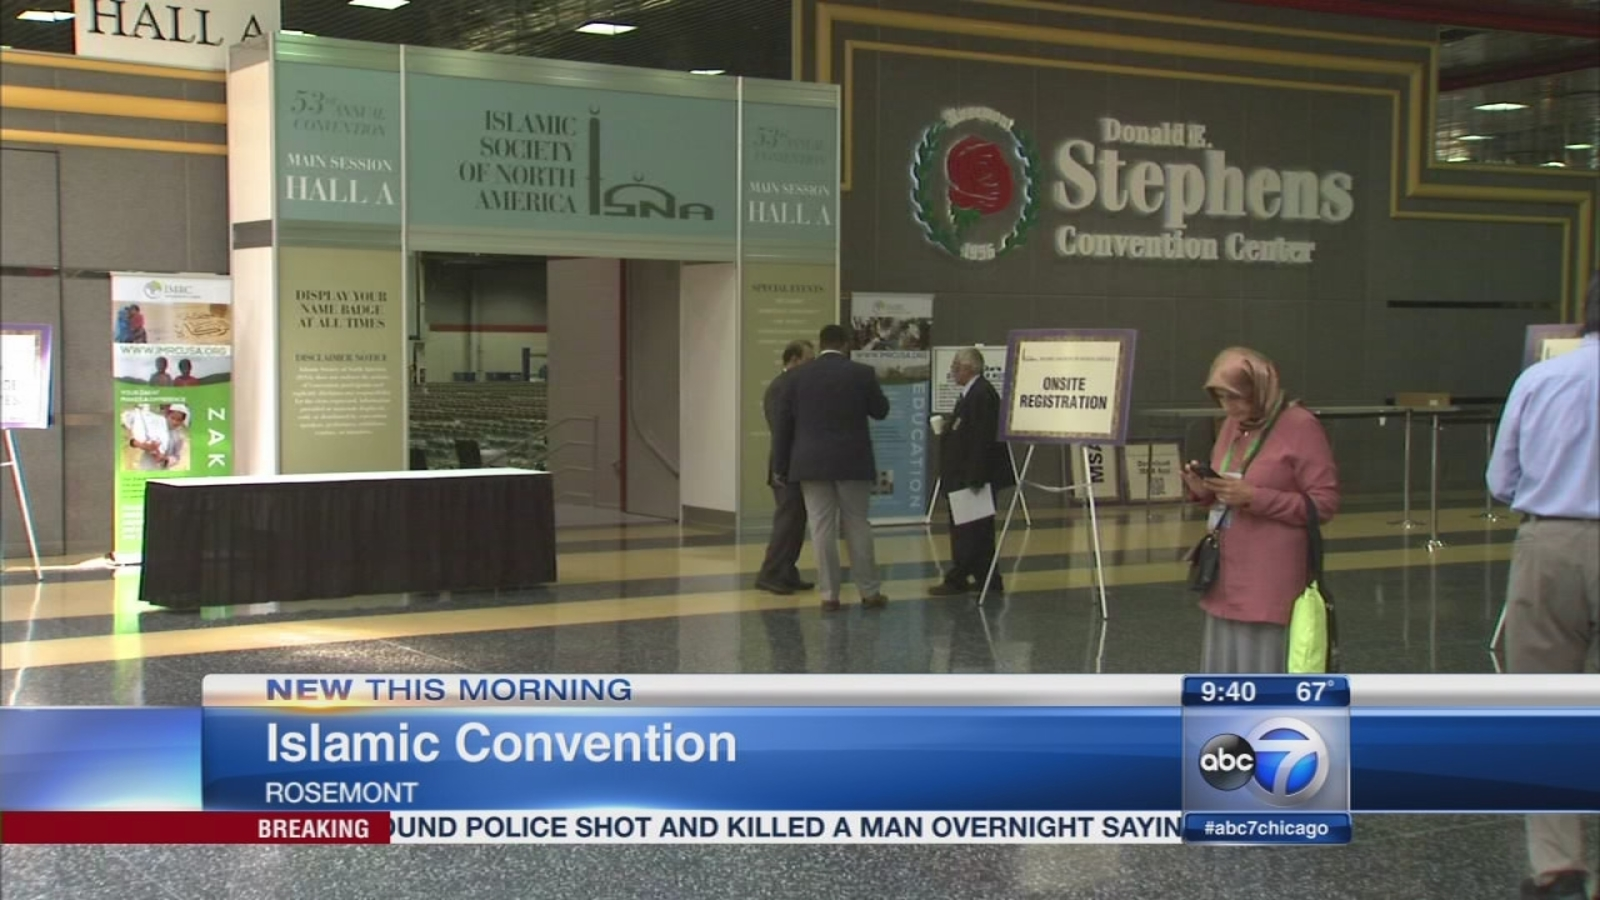 American Muslims hold largest anaual event in Chicago